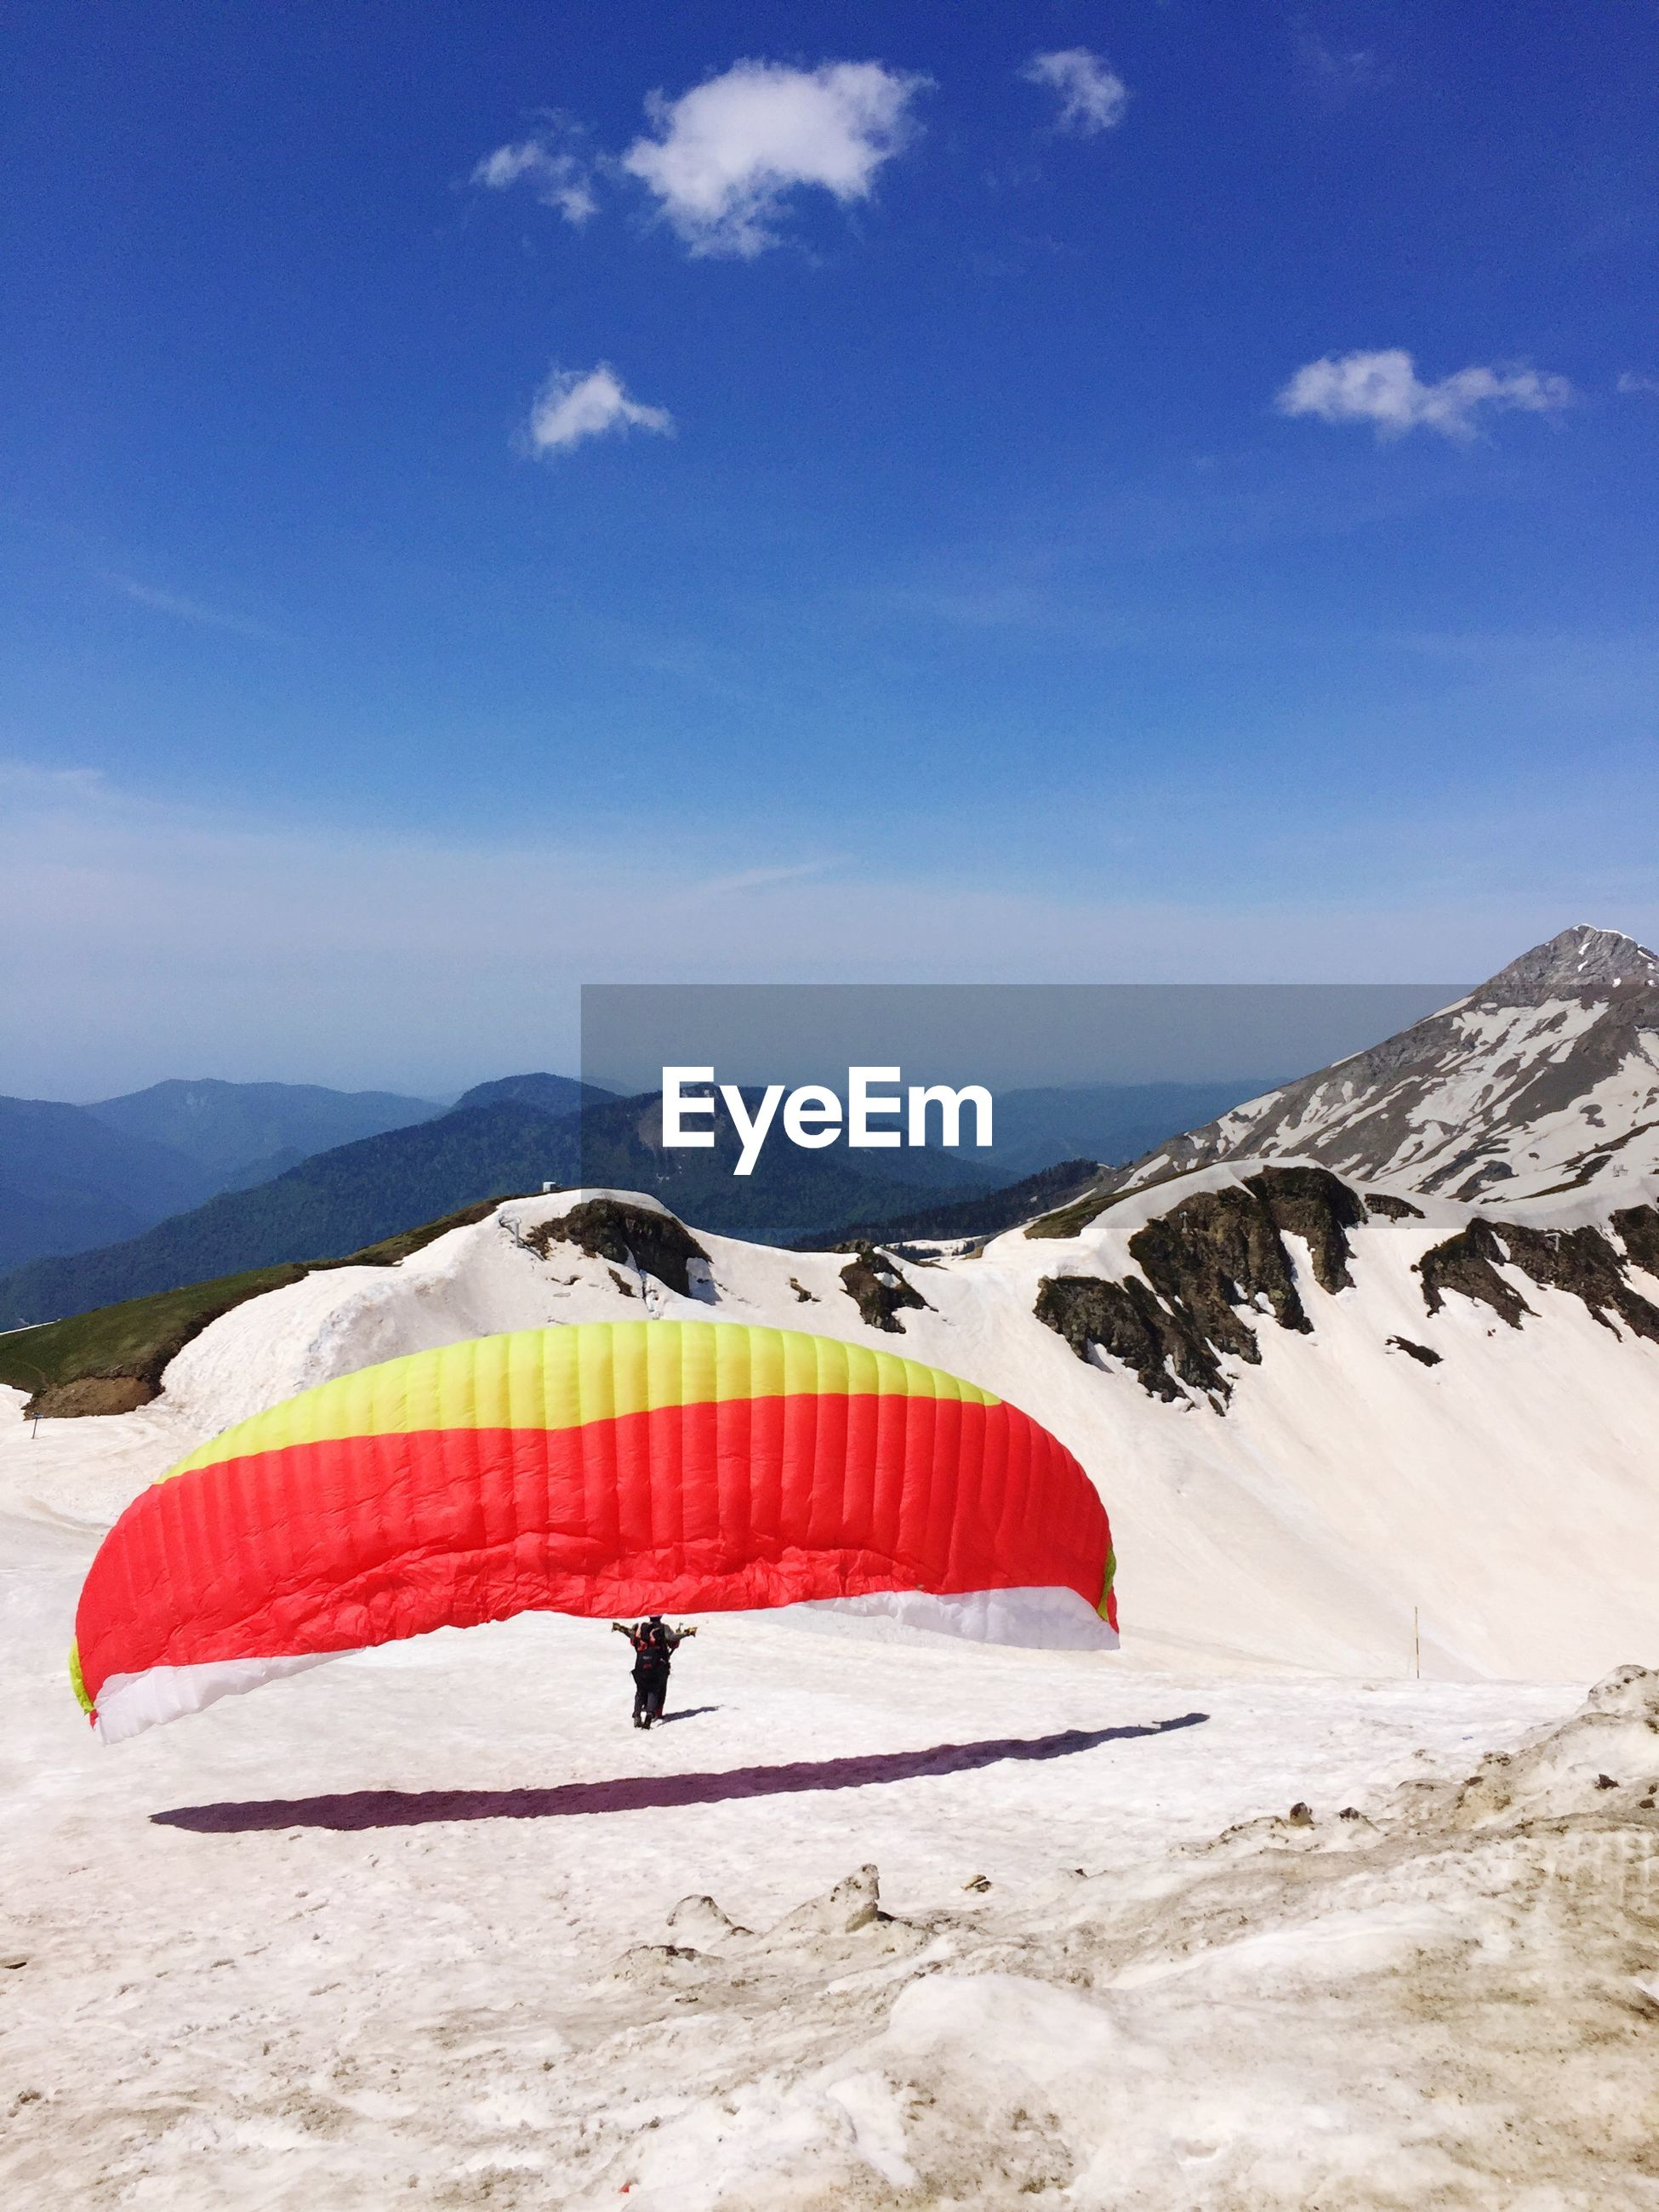 Man paragliding on scenic snowcapped mountains against blue sky